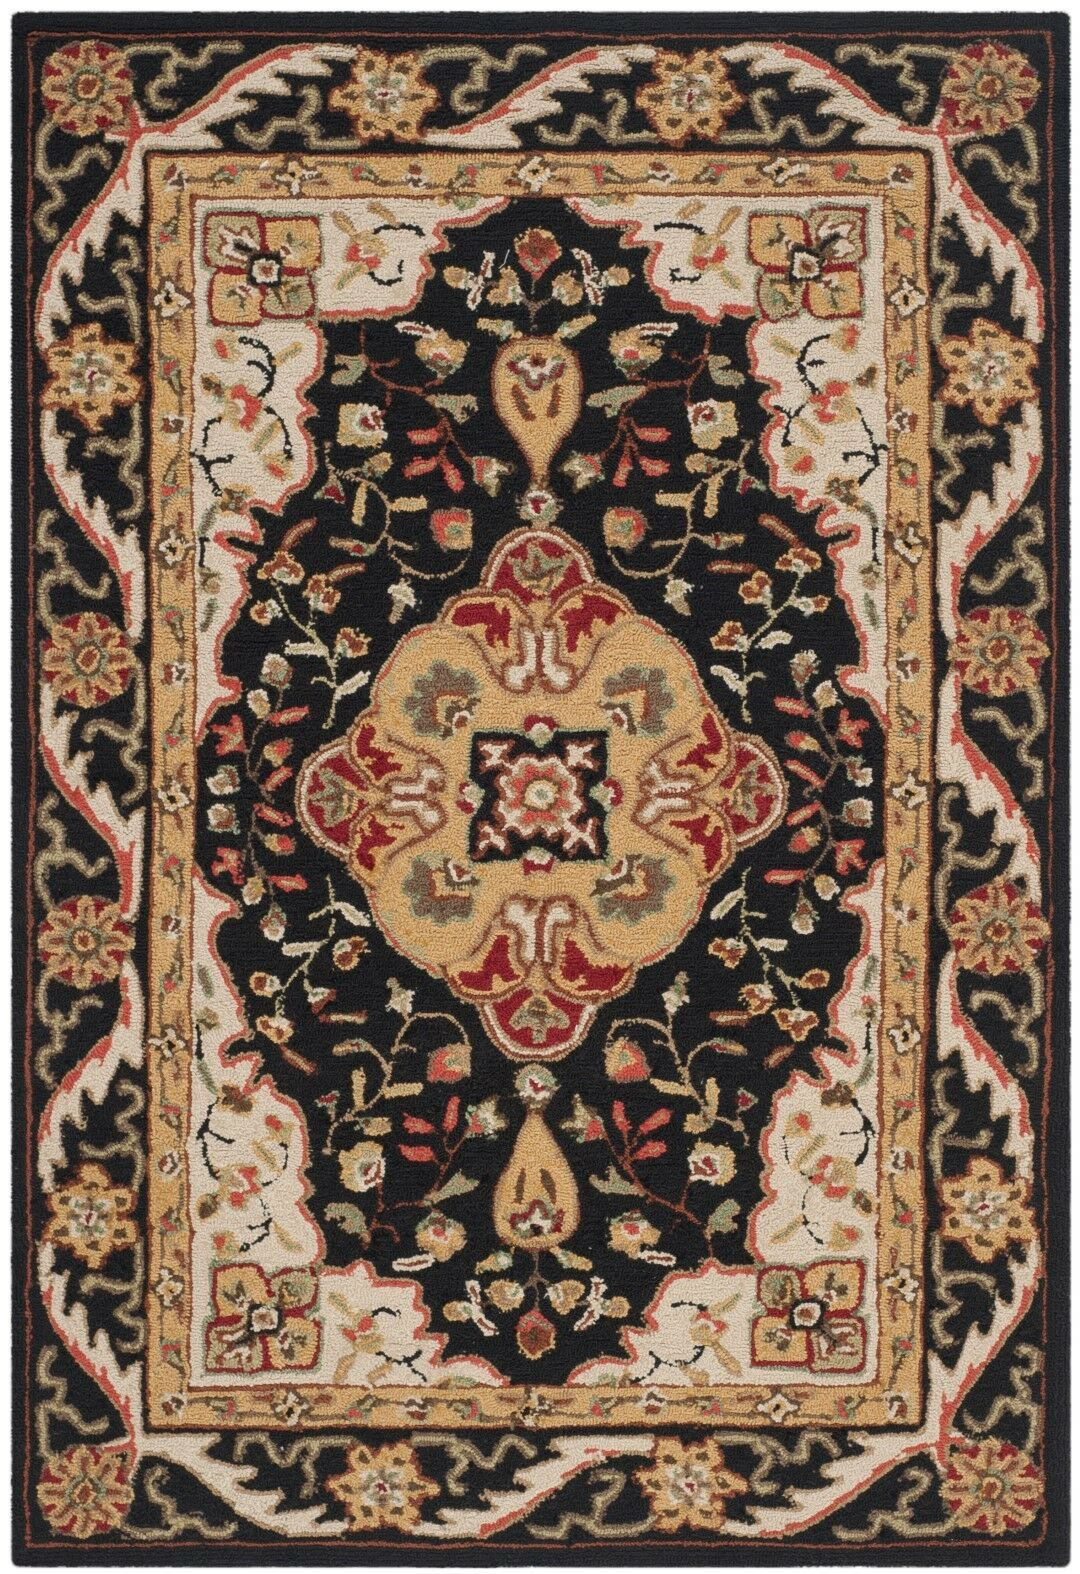 Bryonhall Hand Hooked Area Rug Rug Size: Rectangle 4' x 6'